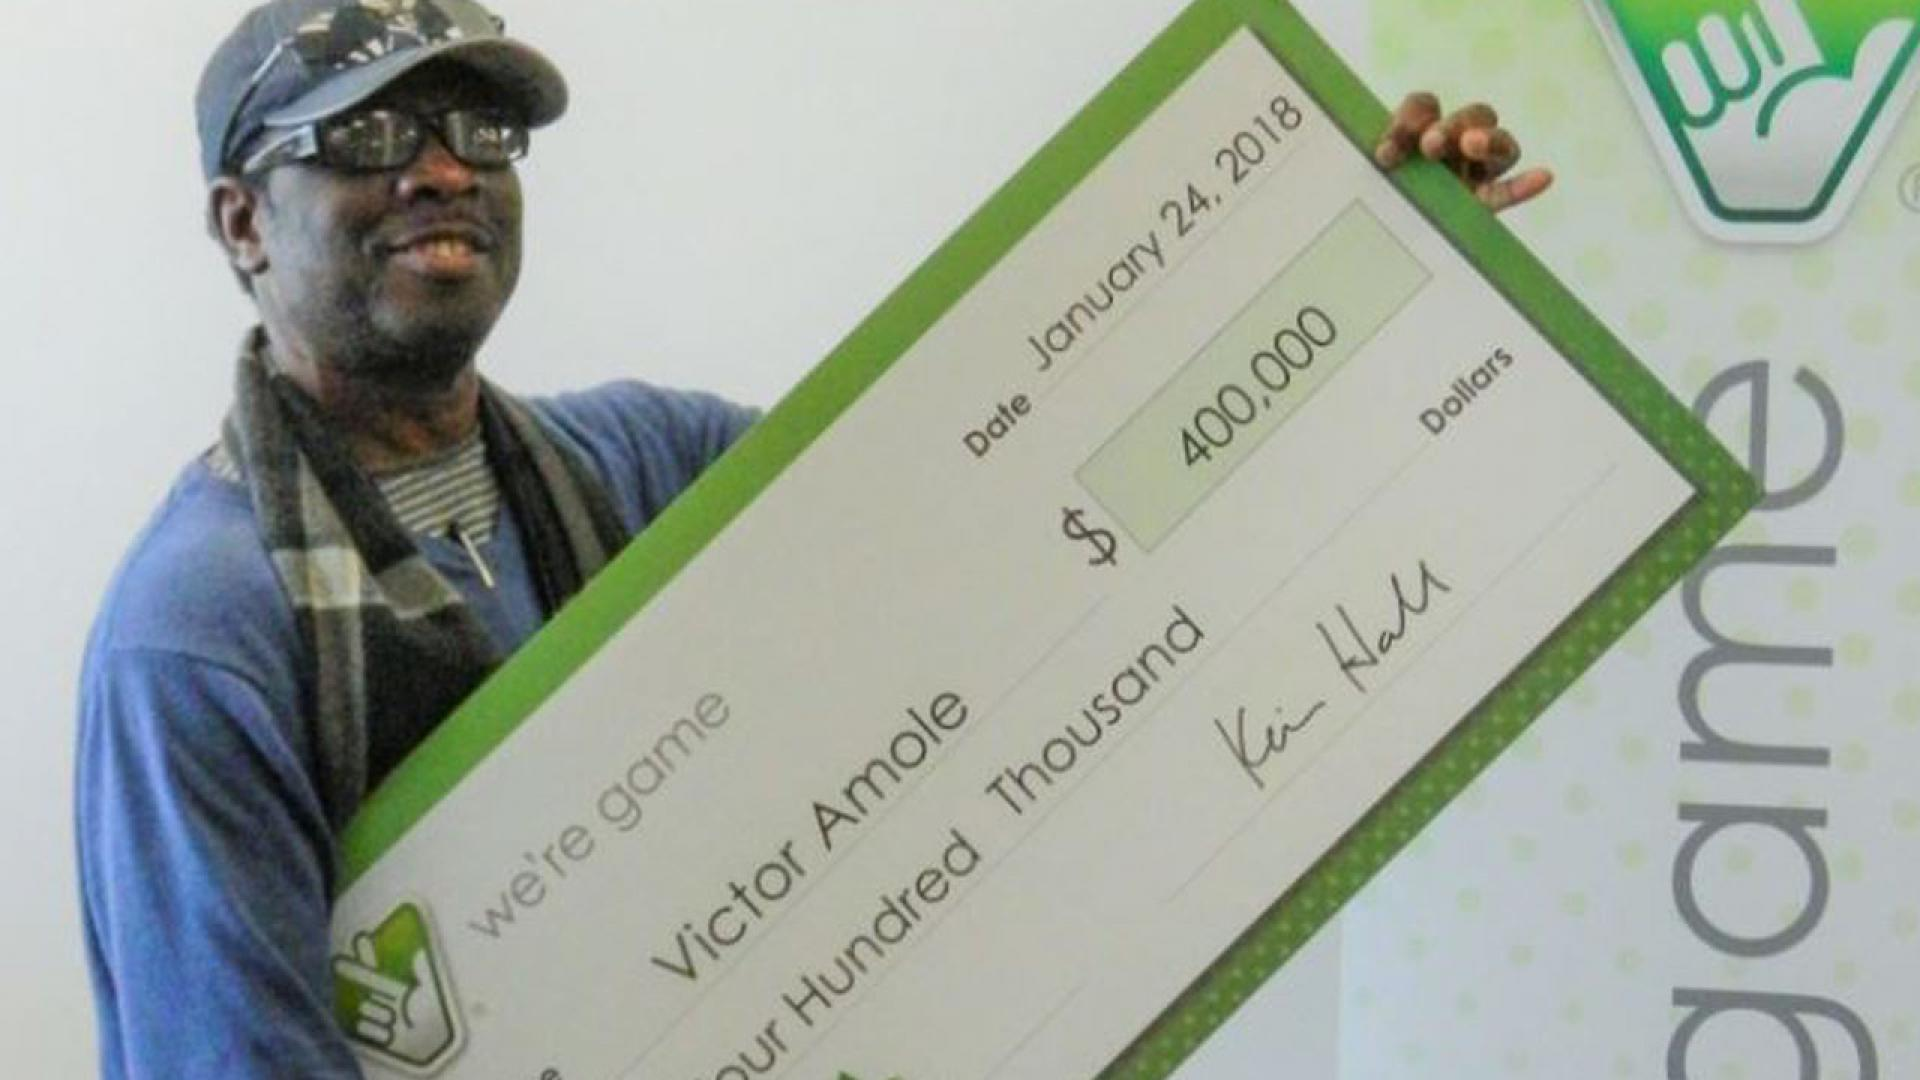 Victor Amole bought four tickets in the Virginia Lottery's Cash 5 game at Fas Mart in Stafford on Jan. 13.